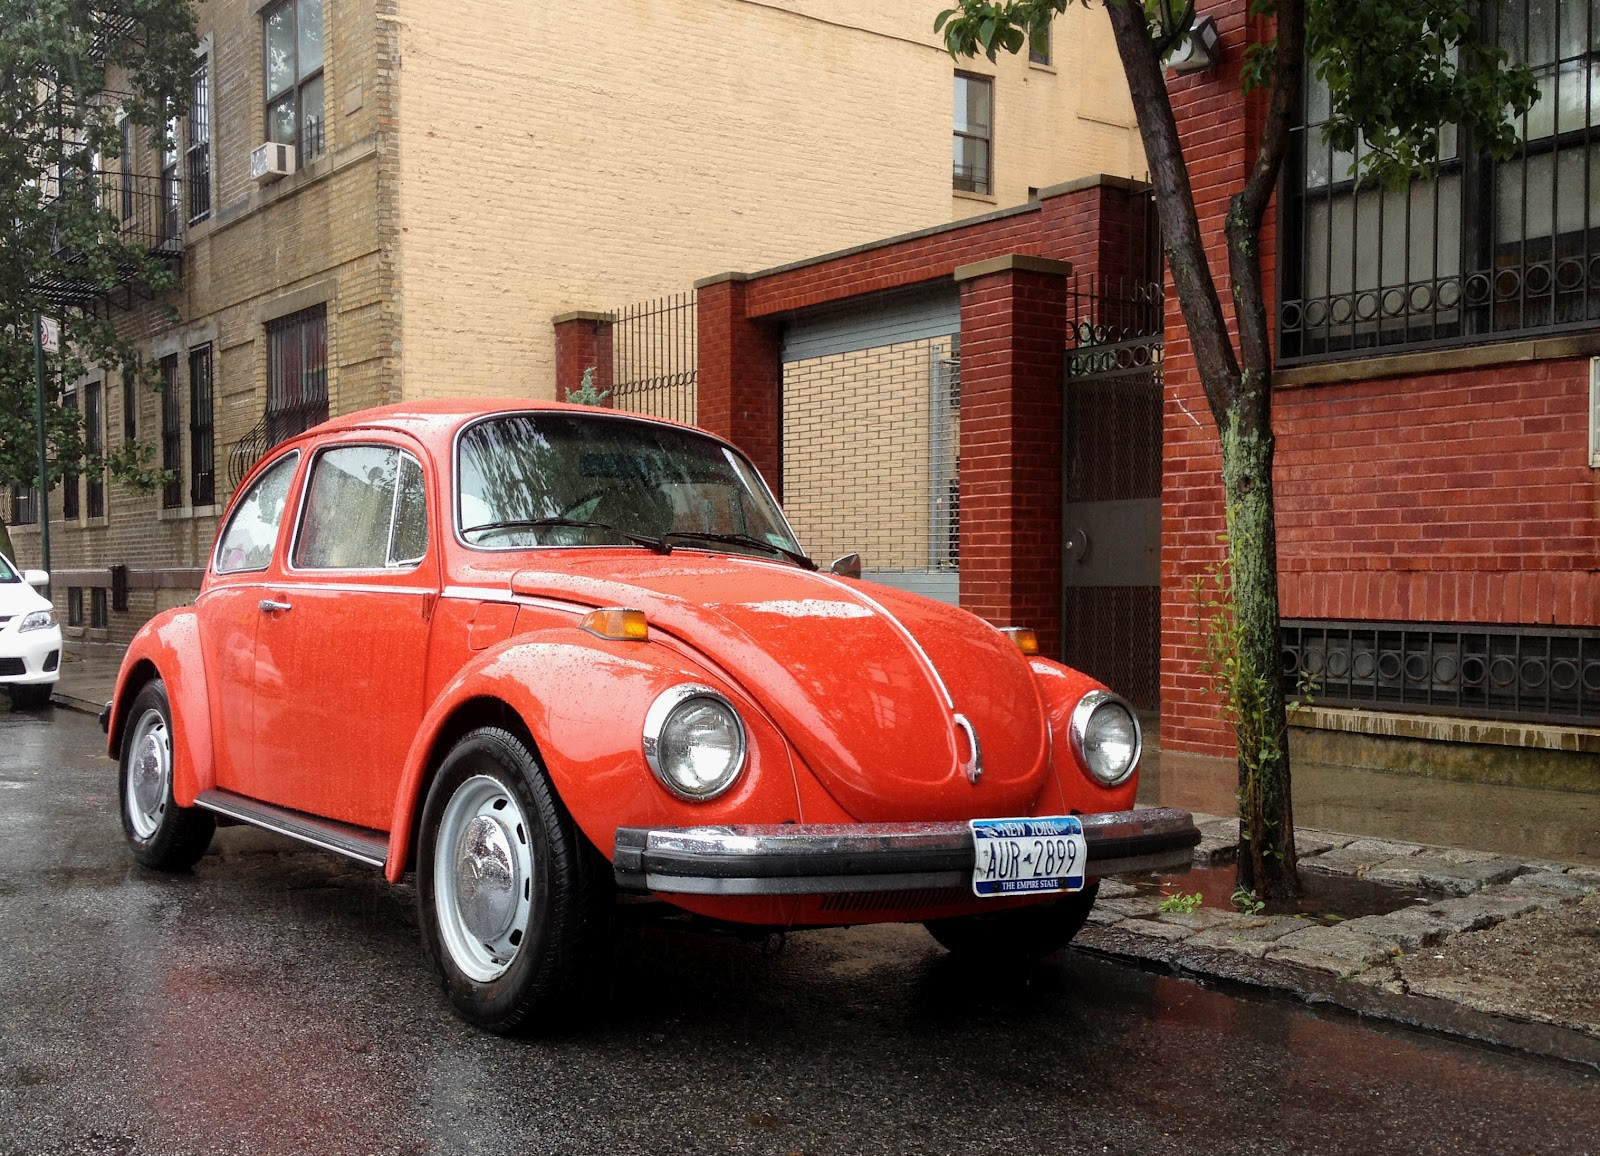 Spots besides 60907 further Spots moreover 1974 Volkswagen Super Beetle together with 1974 Cadillac Coupe De Ville 2 Door. on 1974 cadillac coupe de ville 2 door 9